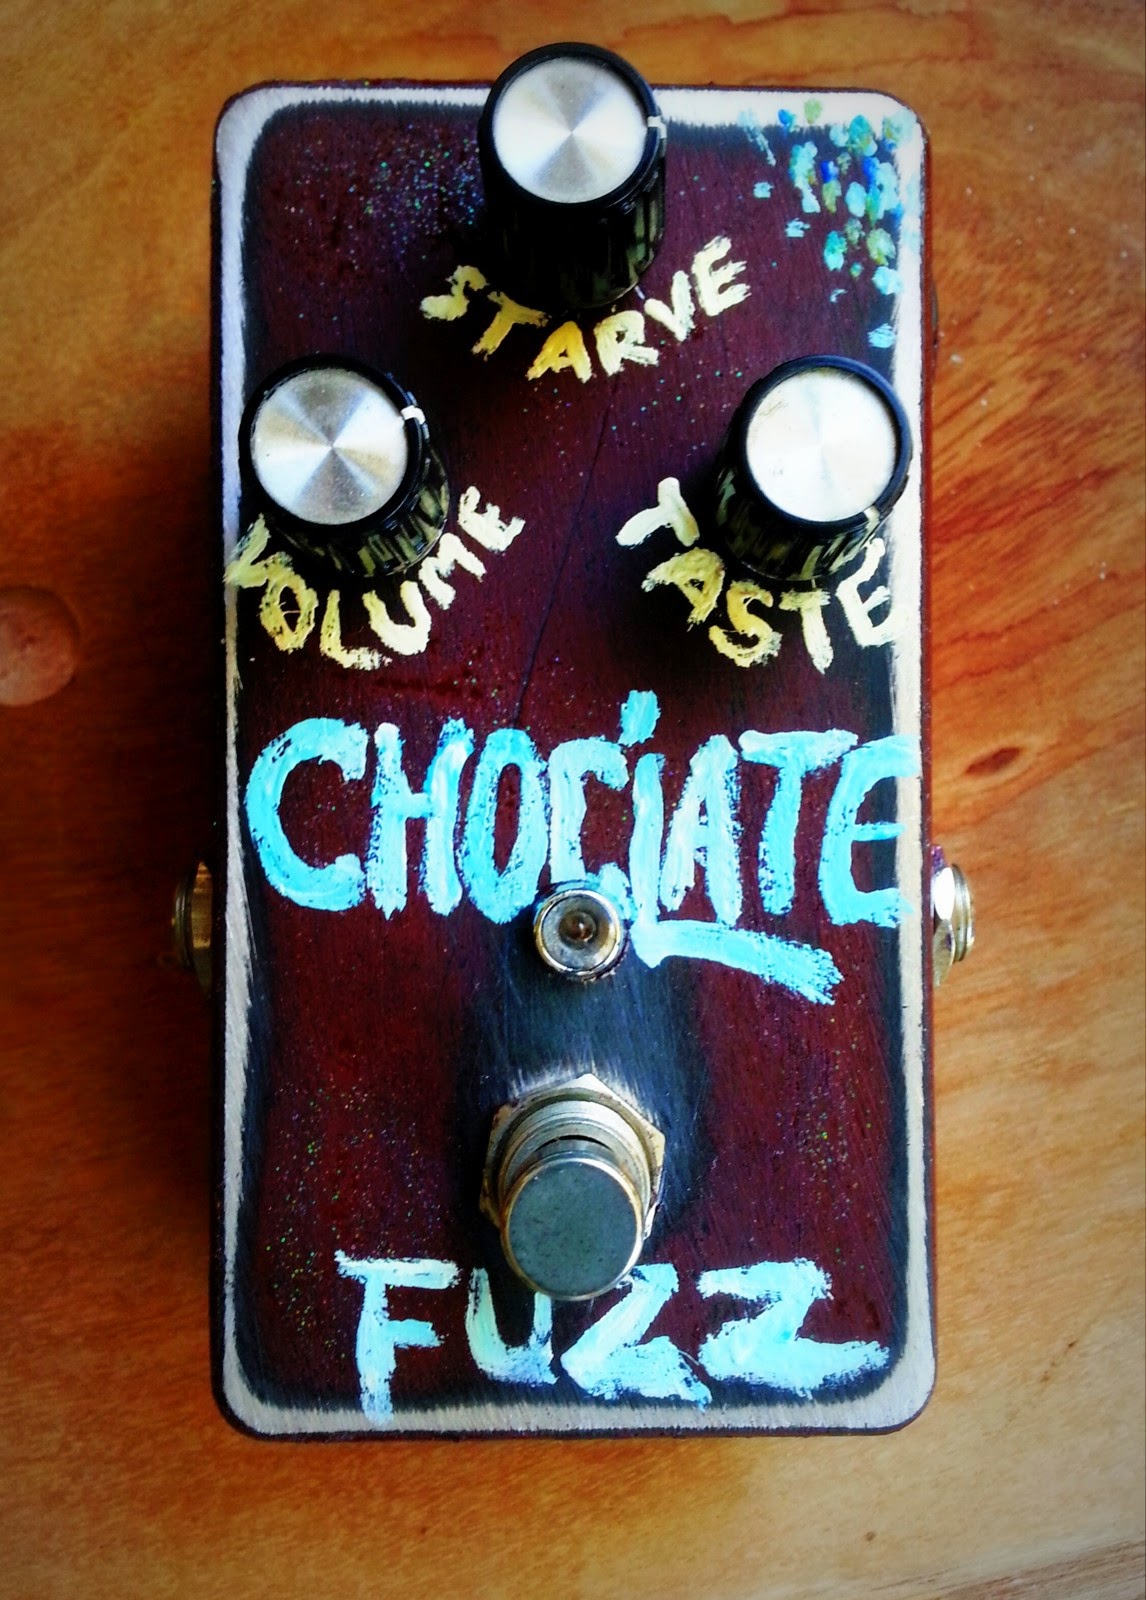 Fuzz Quest Amz Tone Control Mods Expanding The Ts 9 Fz 1 Or Is Probably One Of Most Boring Uninspiring Names In Pedal History Graphics Also Quite